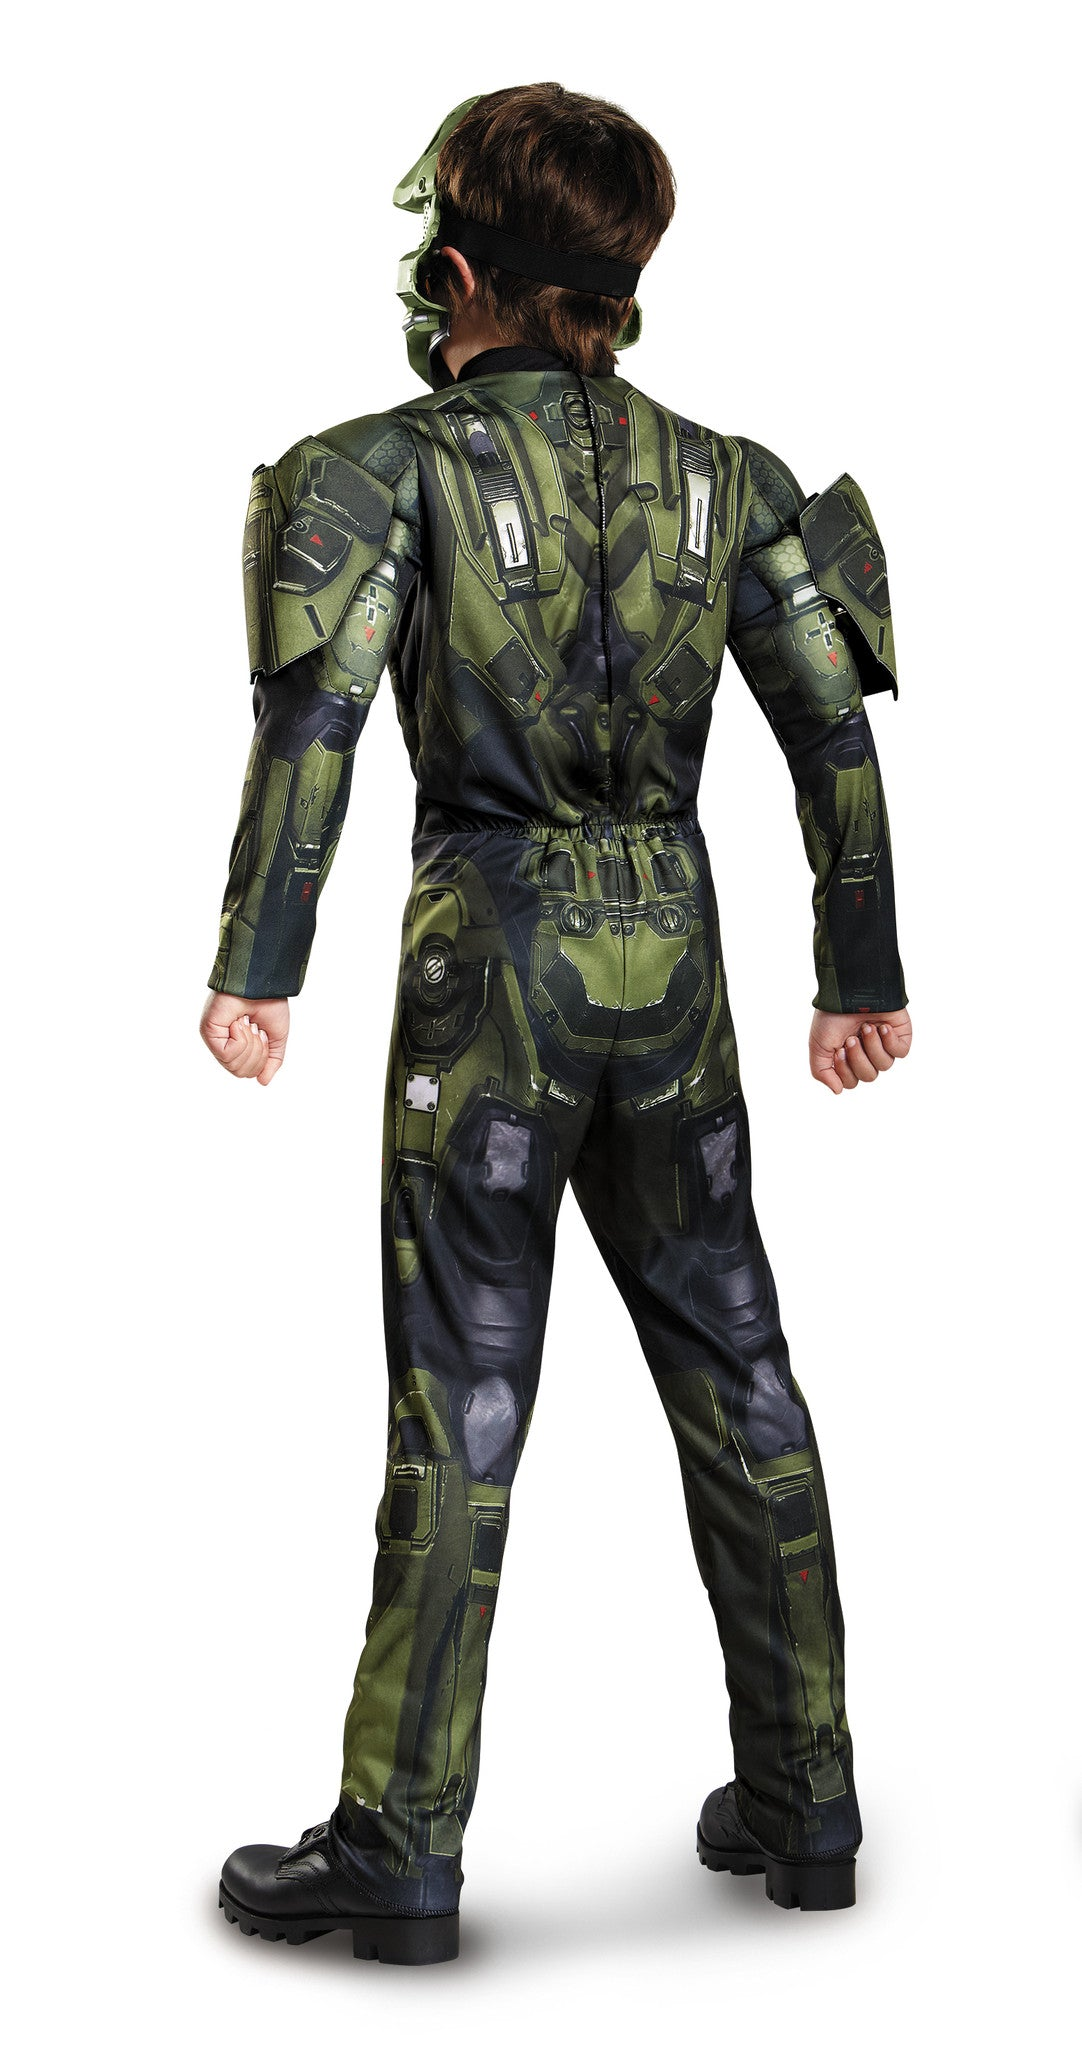 Boys Halo Master Chief Muscle Costume